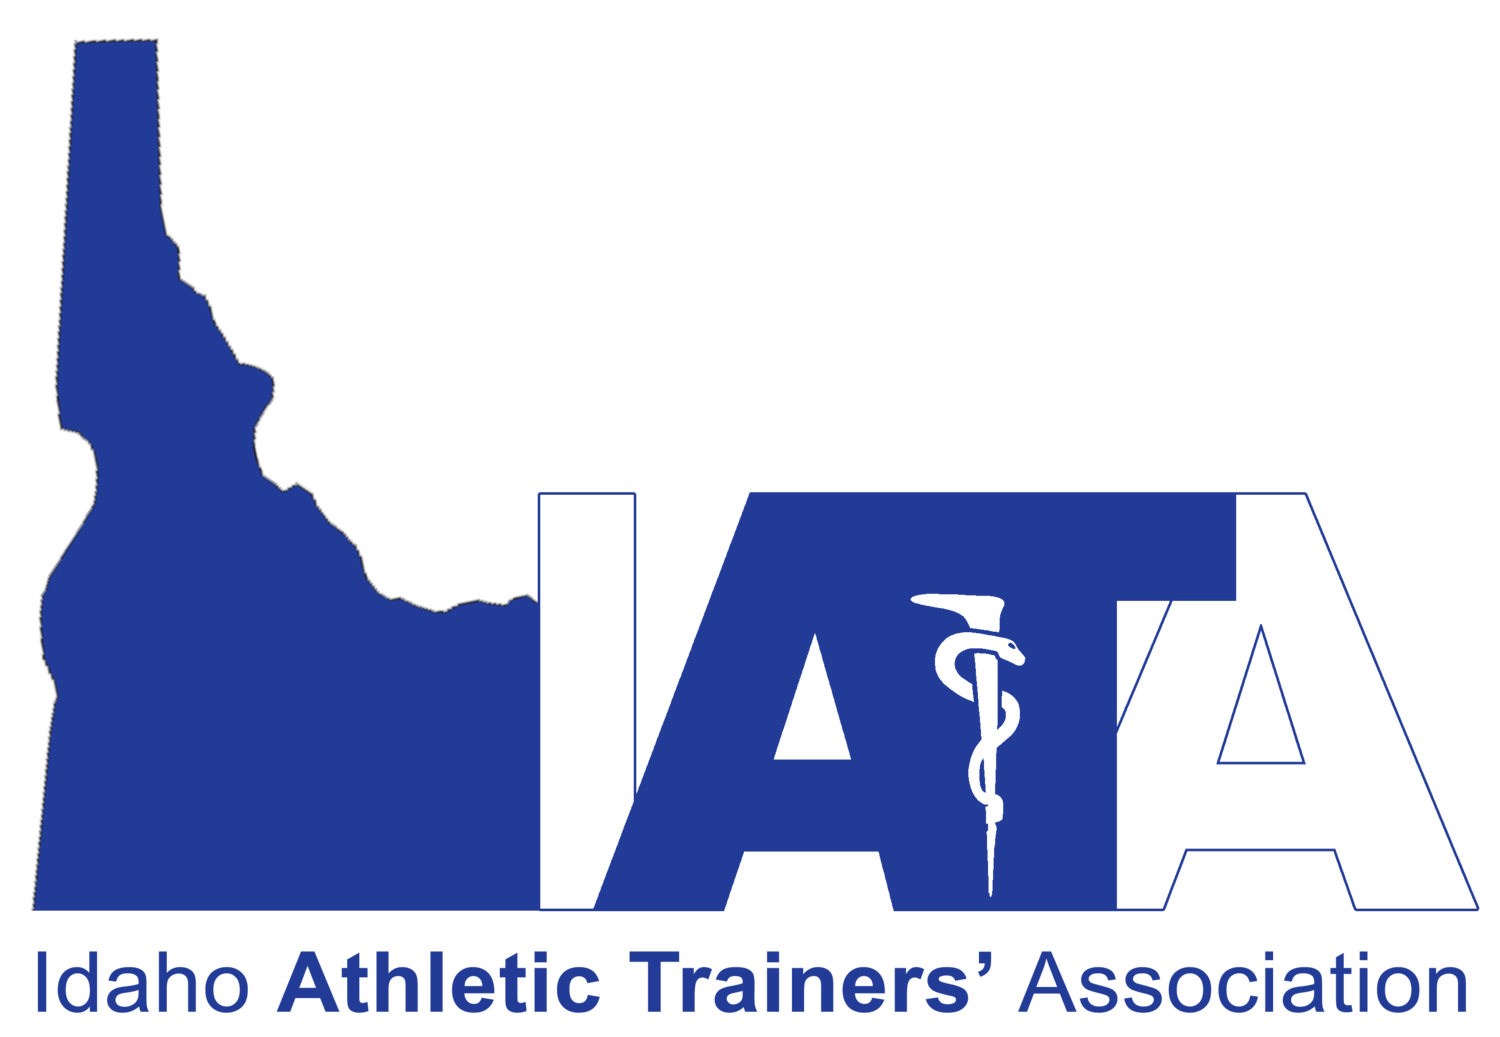 Idaho Athletic Trainers' Association